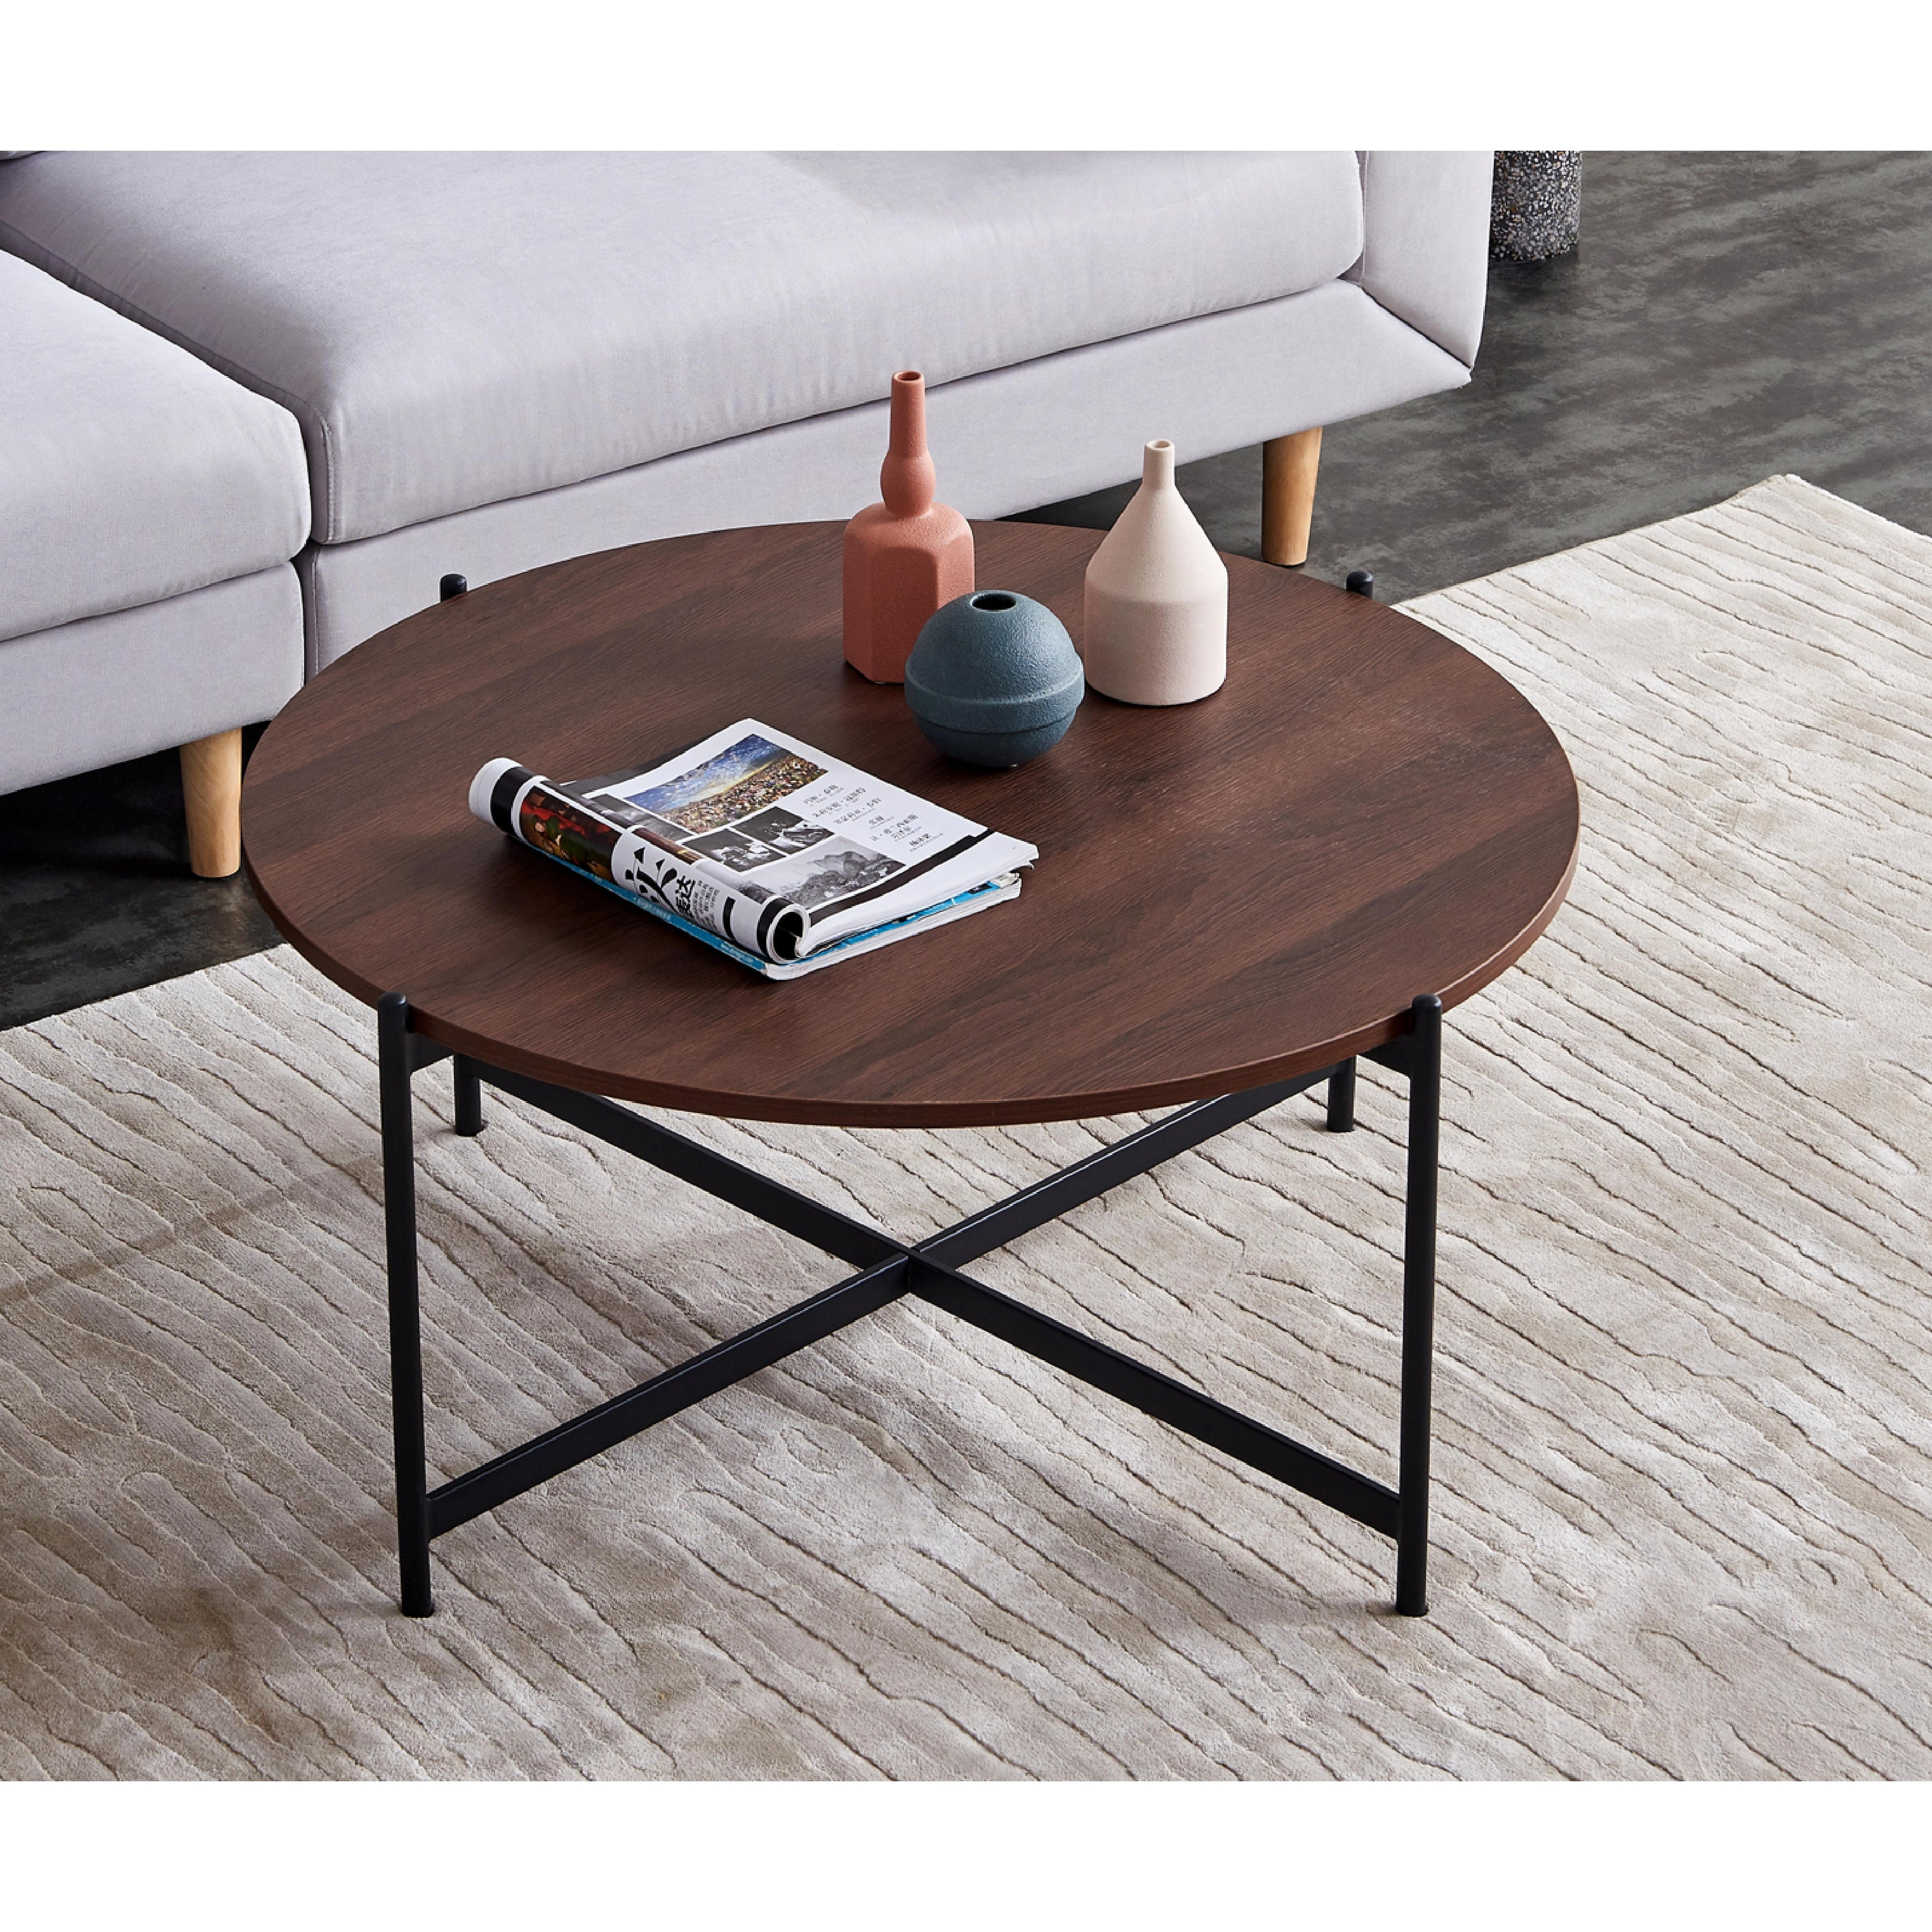 Modern Round Coffee Table Golden Color Frame With Marble Wood Top 32 Overstock 32263252